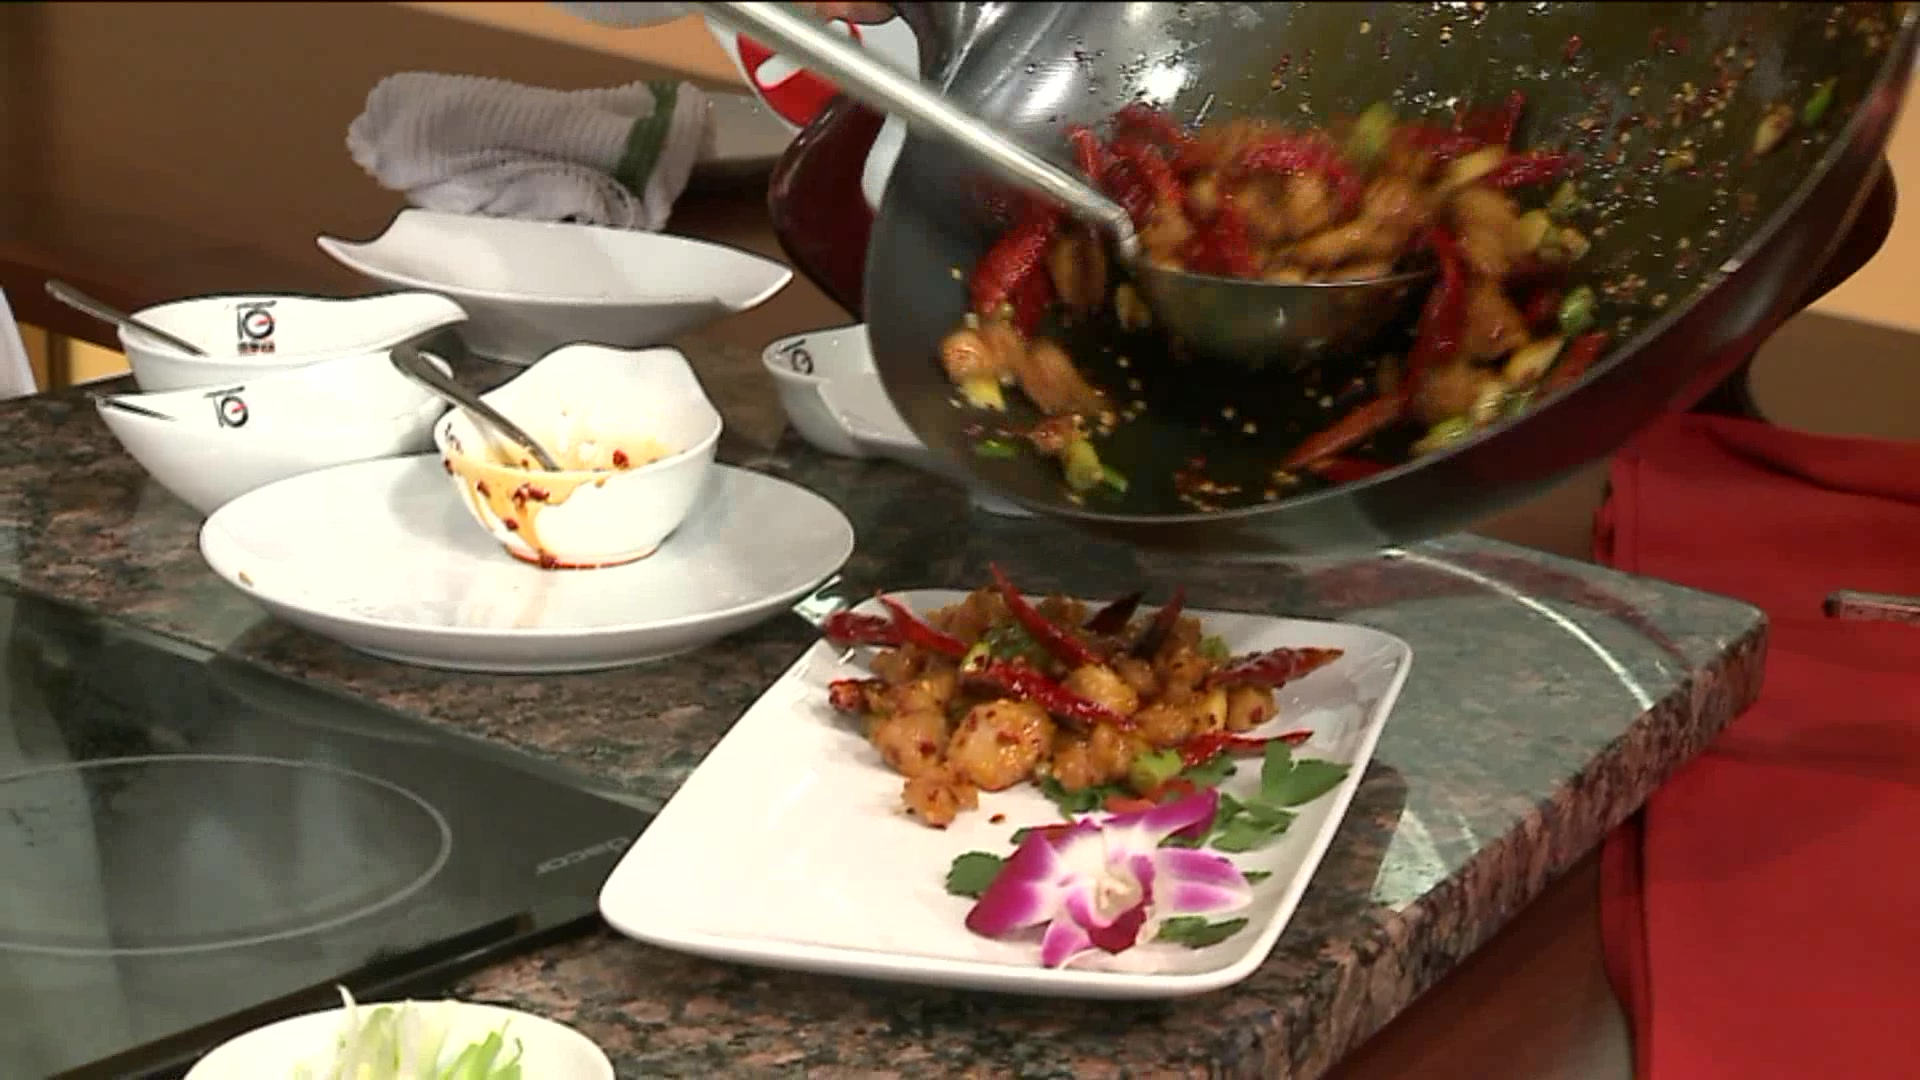 How To Make Lao Sze Chuan's Famous Dry Chili Chicken